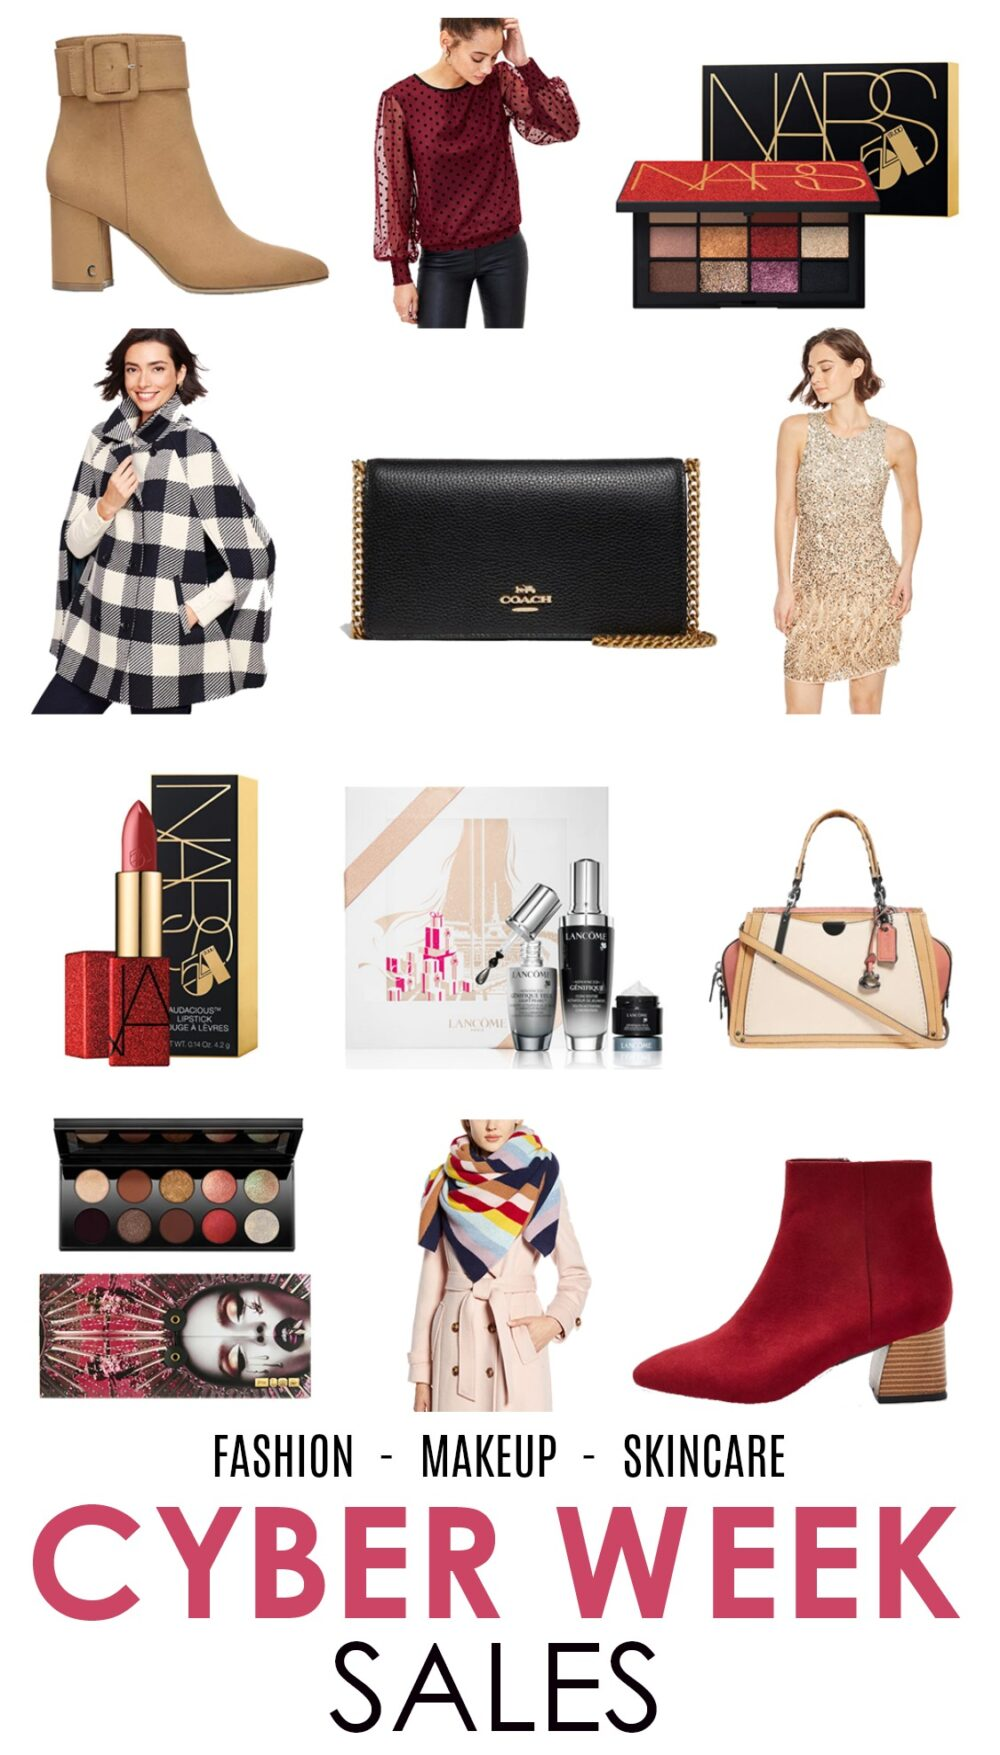 2019 Cyber Week Sales I Fashion Makeup and Skincare